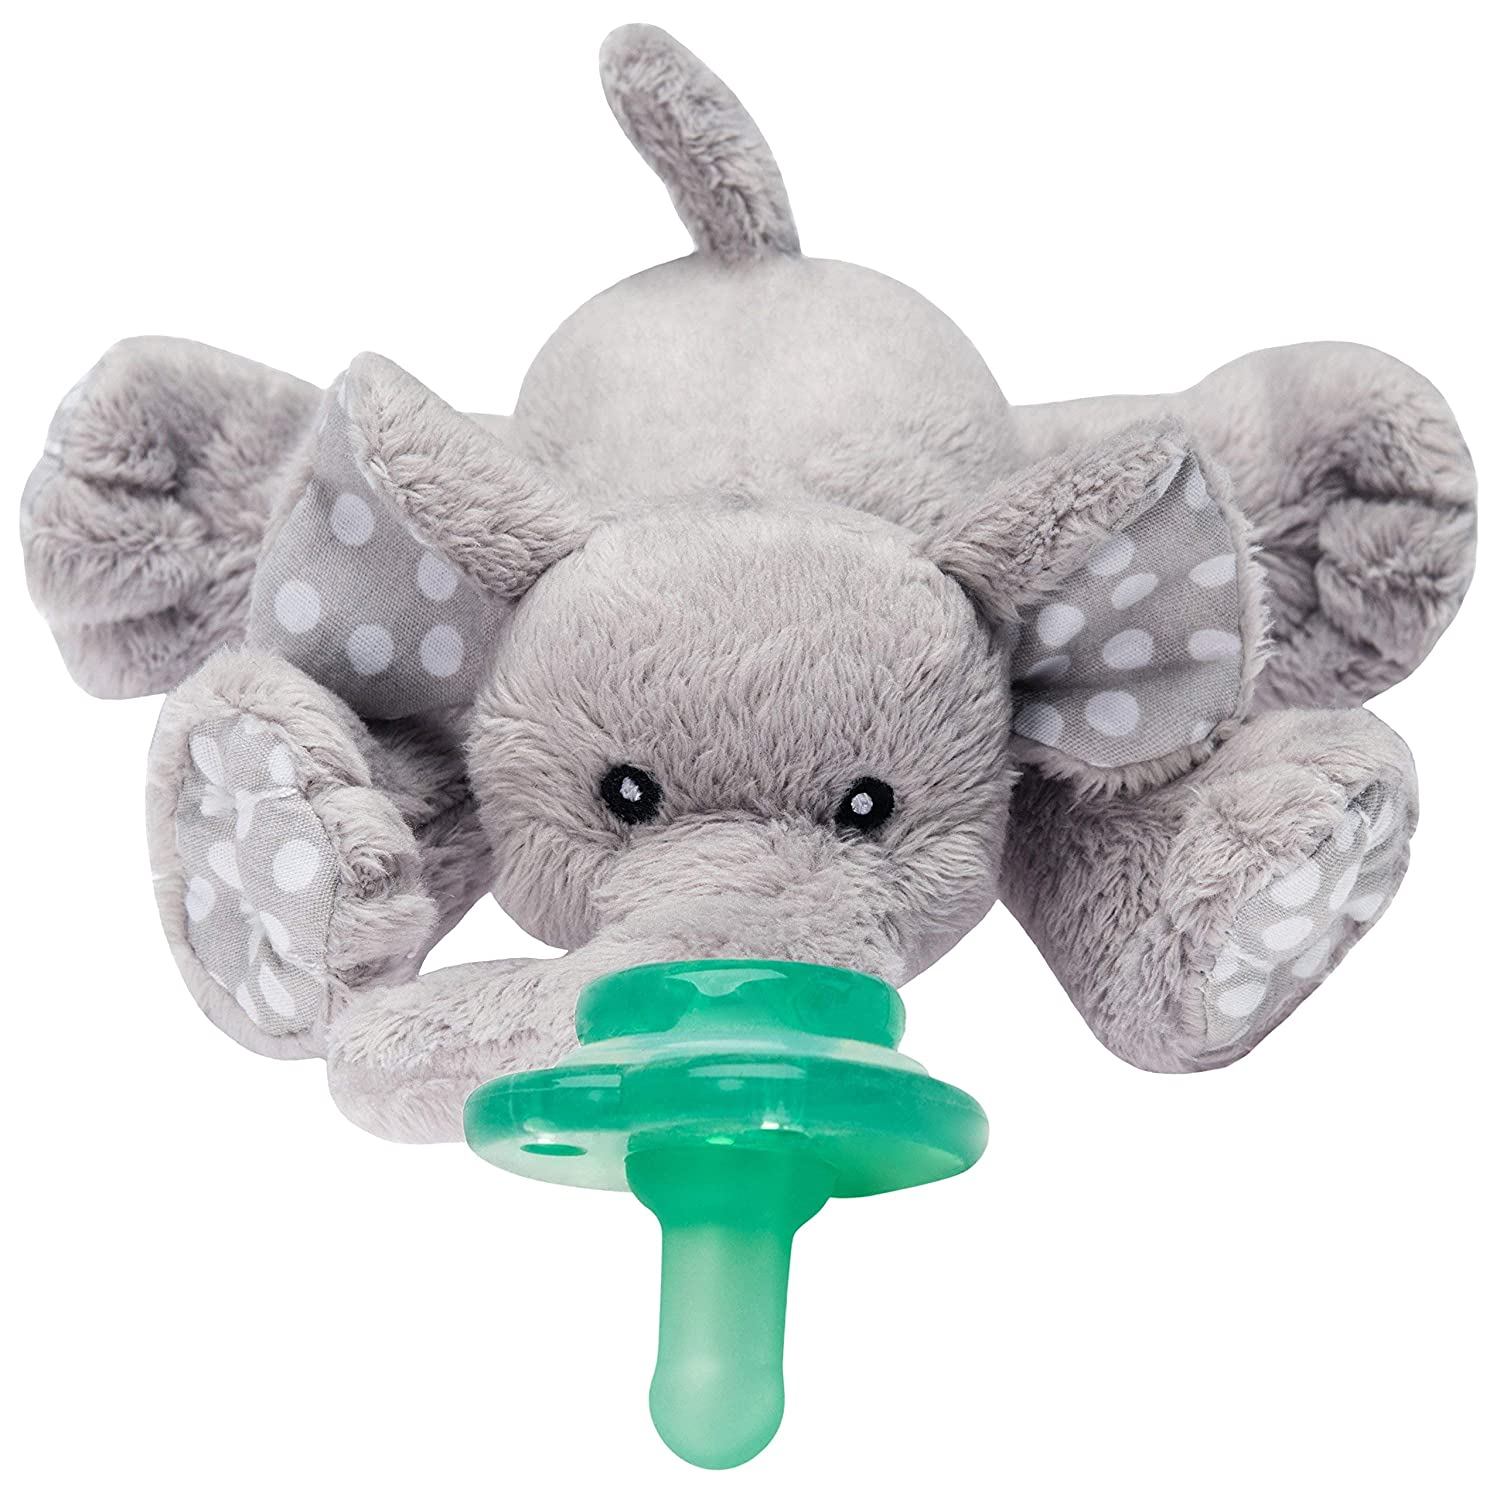 Amazon.com: nookums paci-plushies elefante Gift Set ...